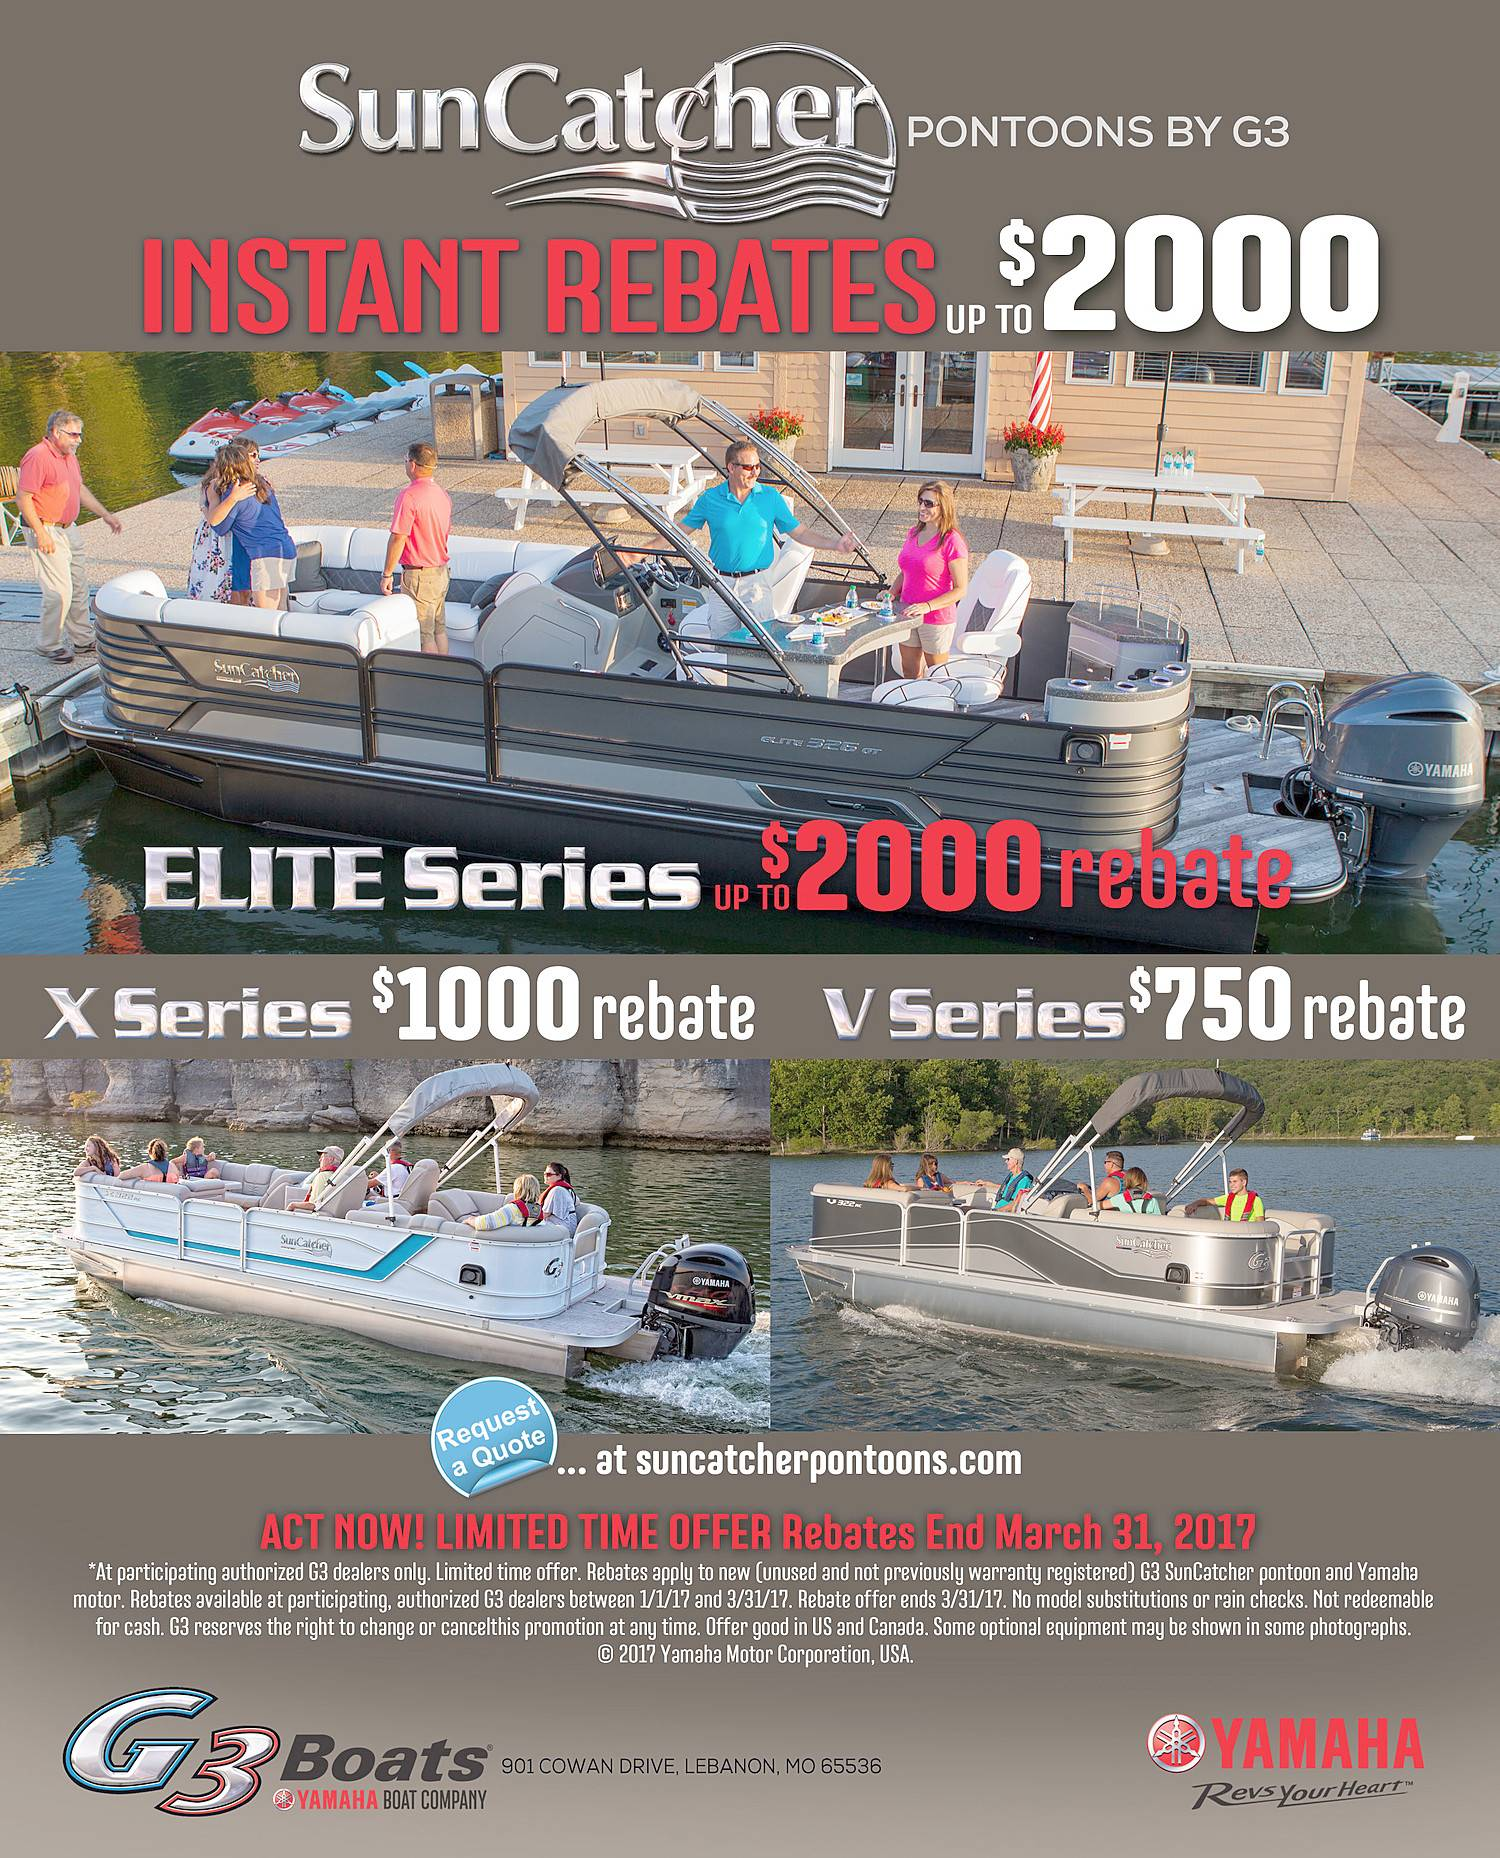 Sun Catcher Pontoons By G3 - Instant Rebates Up to $2000